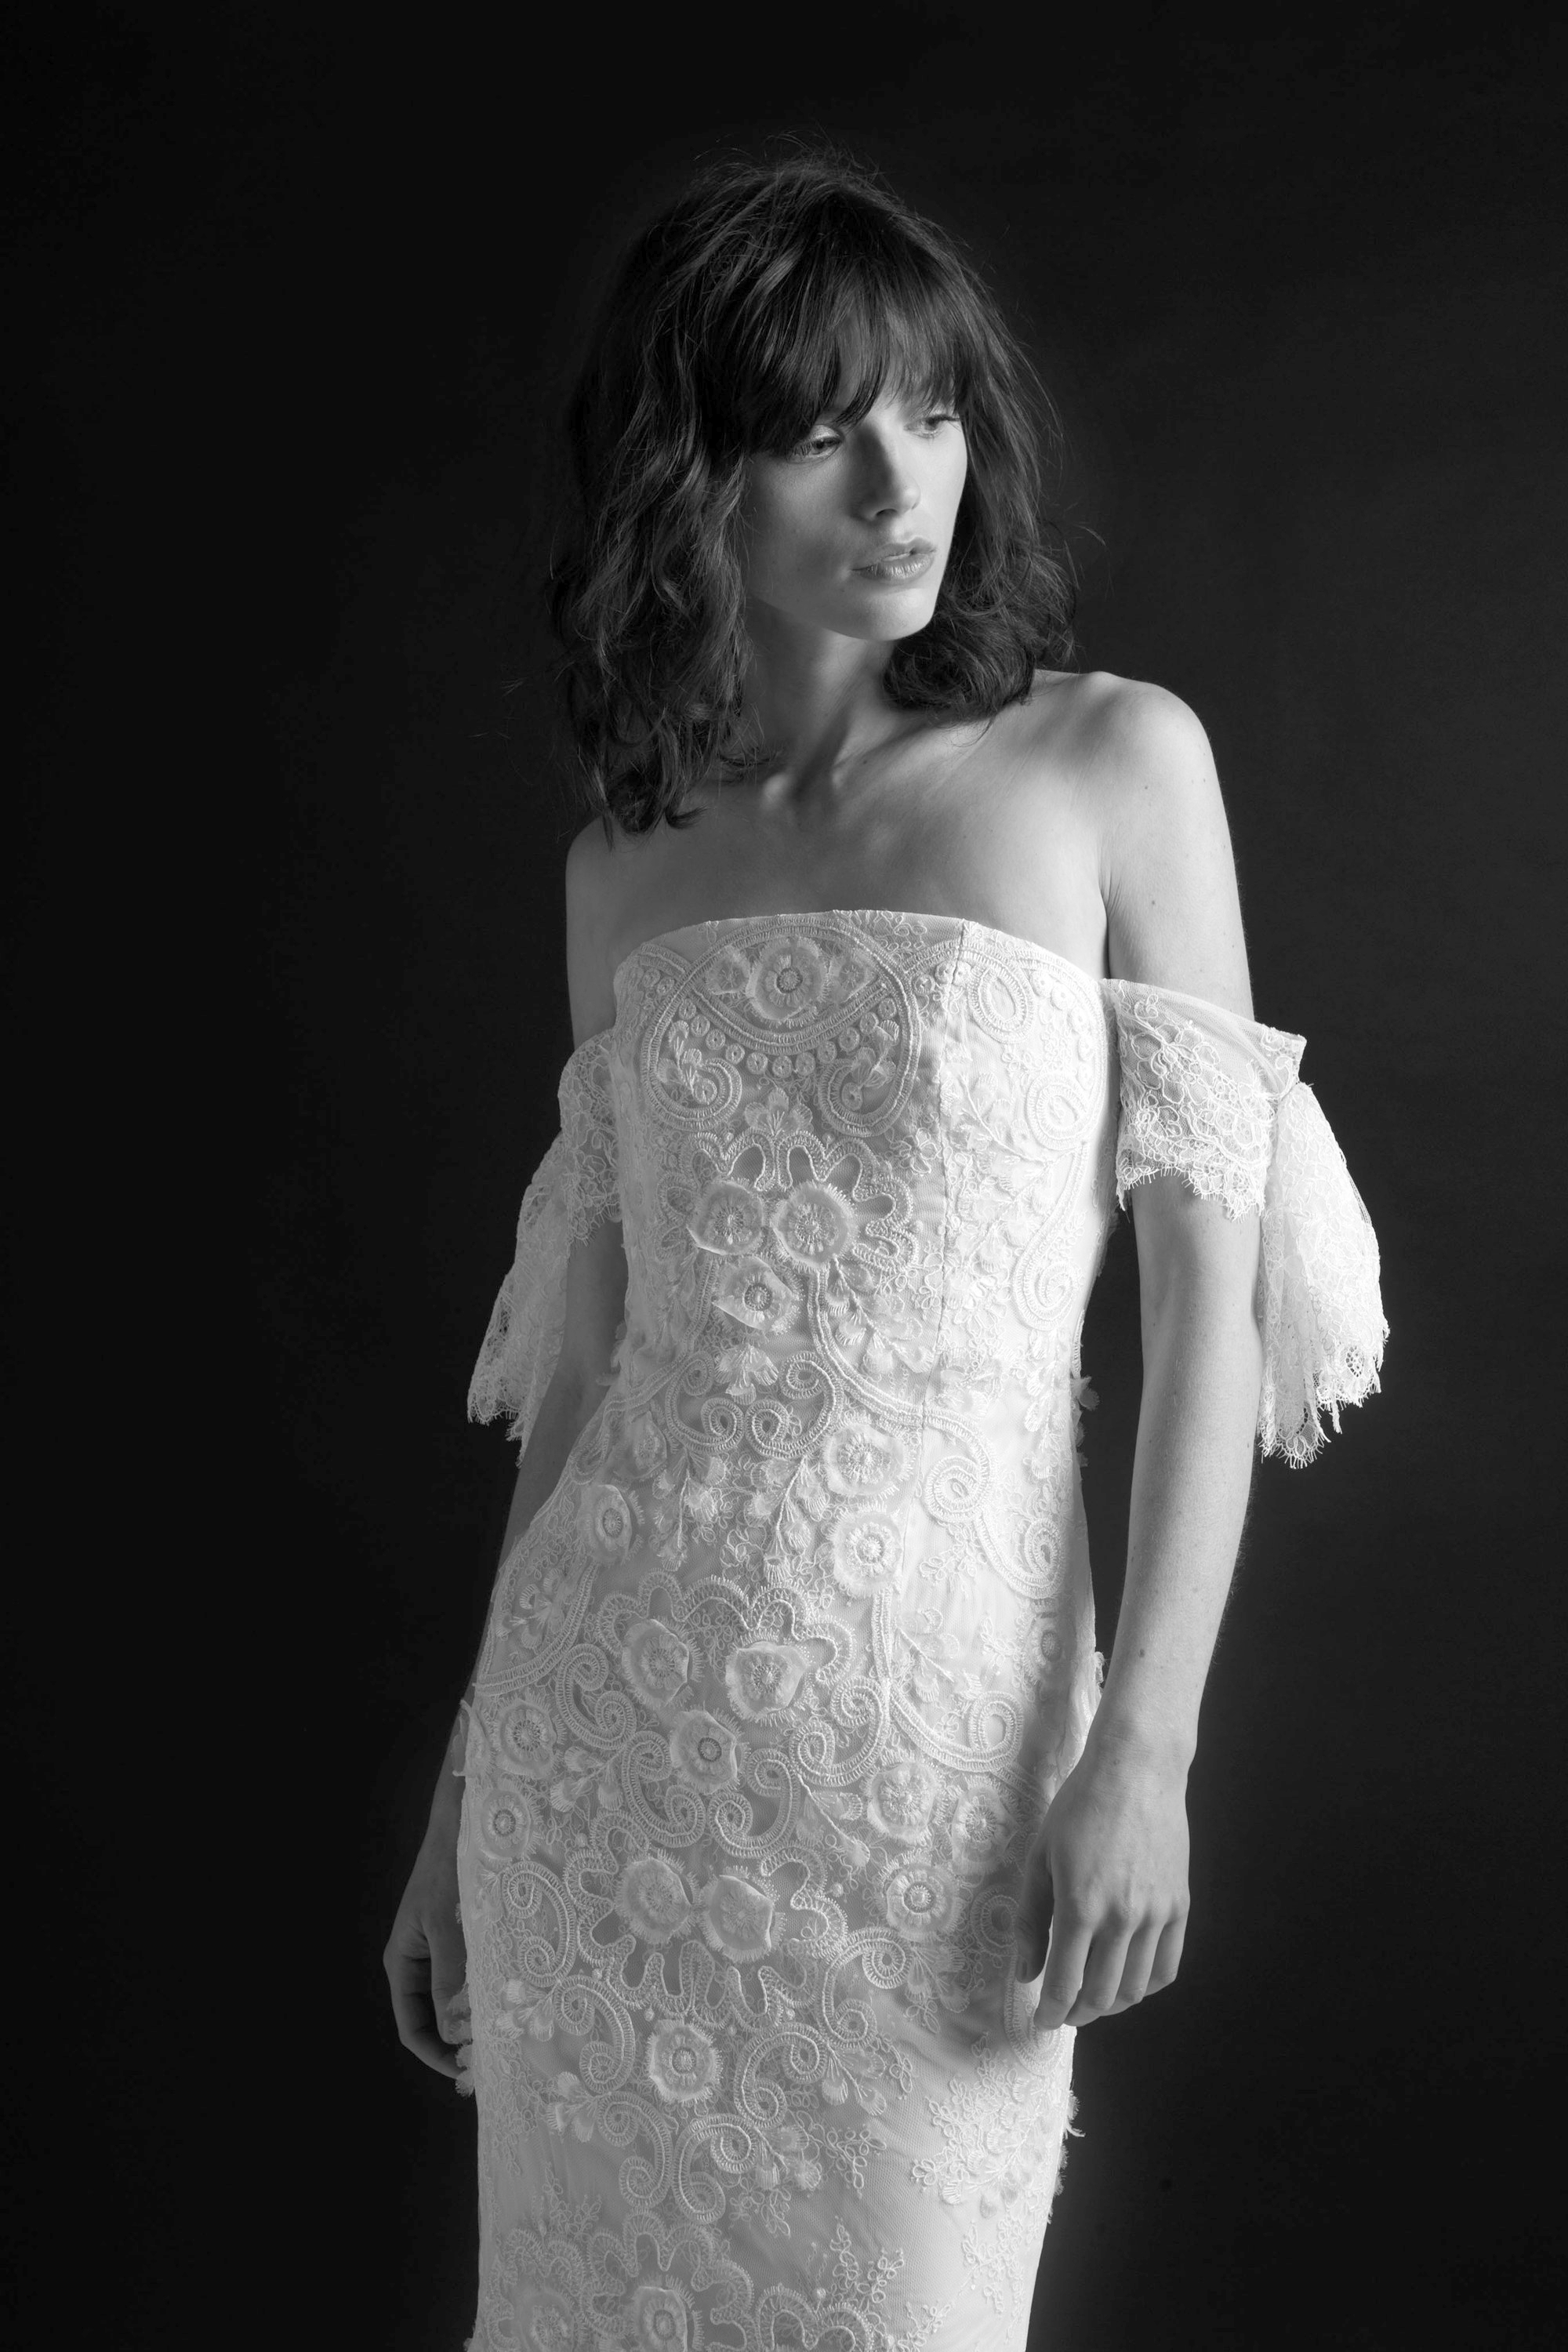 LOVE FIND CO. // The hottest bridal gown trends of 2016 - Sachin & Babi // Follow @lovefindco on Instagram & Pinterest